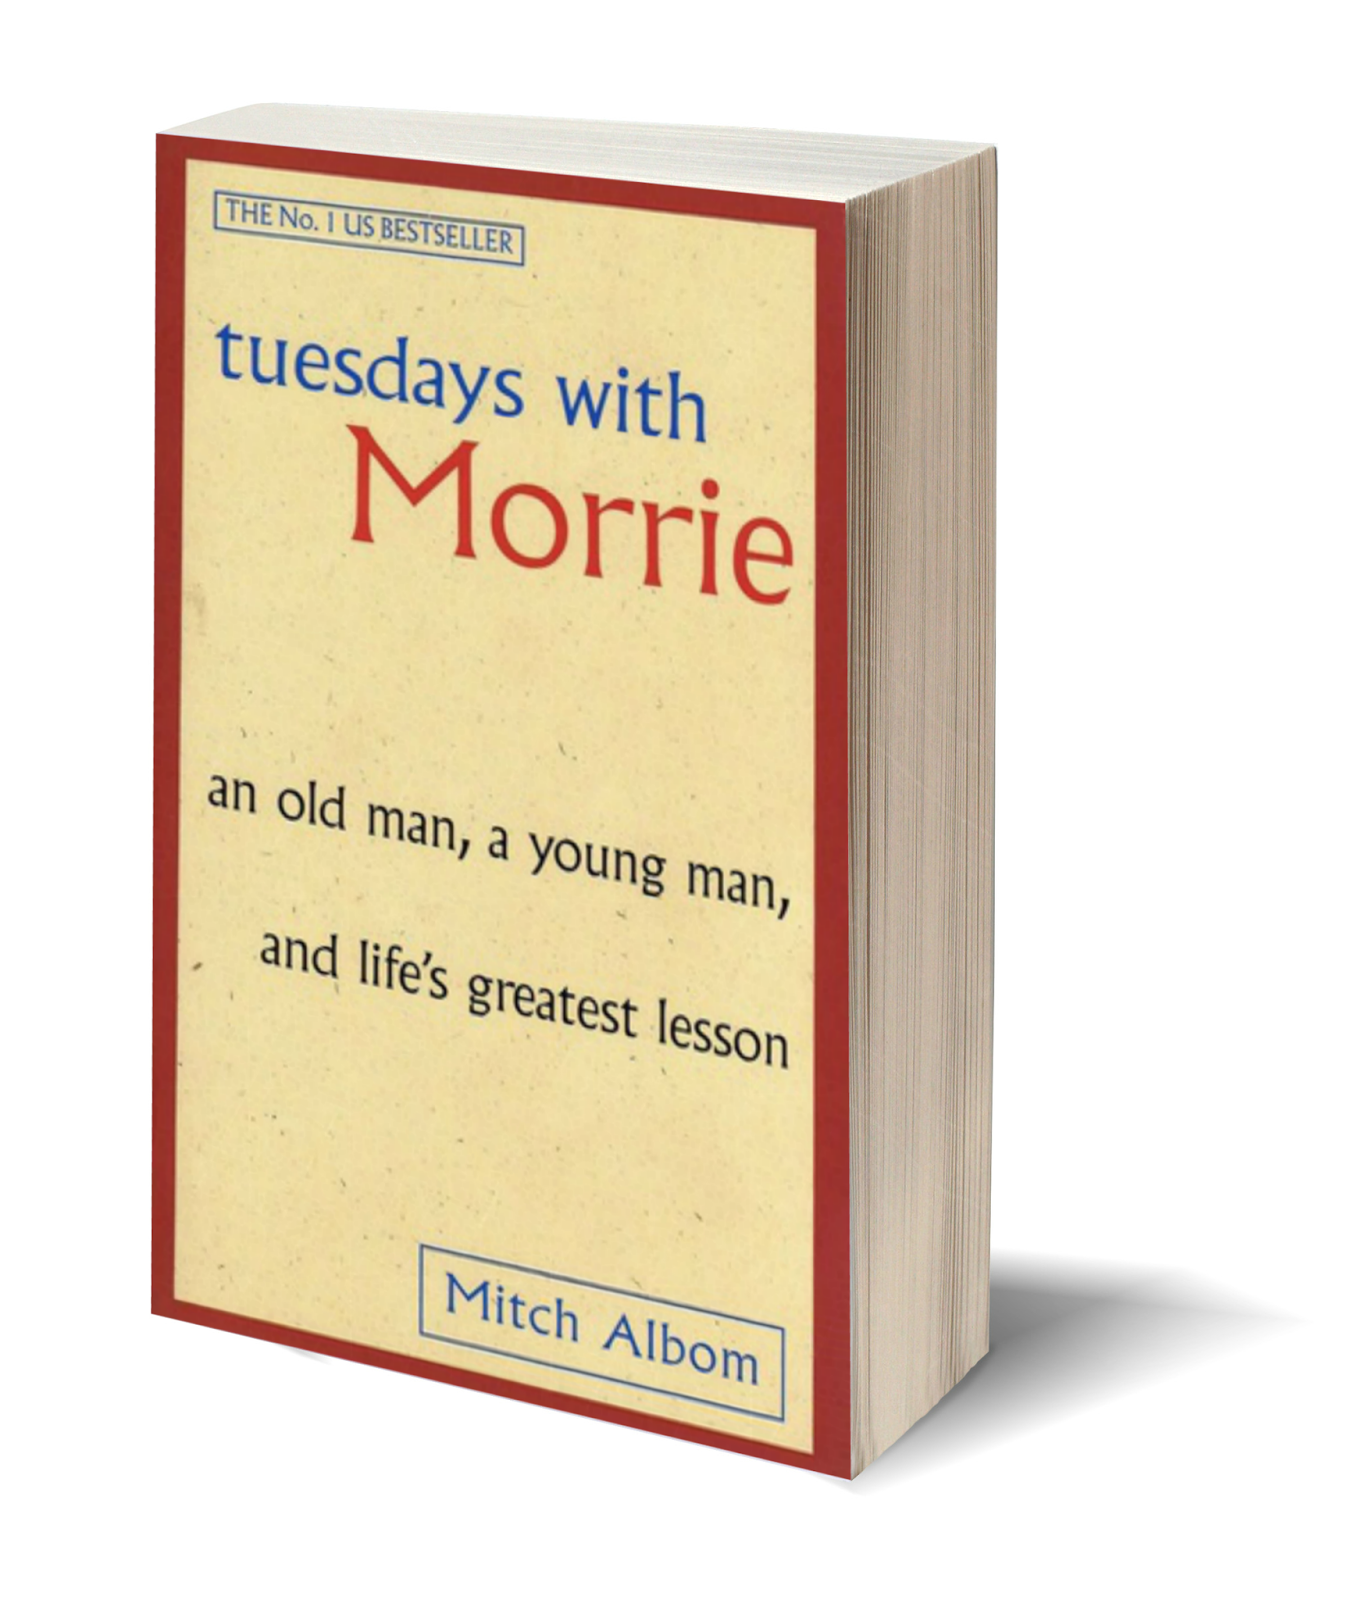 tuesdays with morrie essay thesis View essay - tuesdays with morrie essay from syg 2000 at university of florida tuesdays with morrie society and the individual dr william marsiglio september 24, 2015 in mitch alboms, tuesdays with.